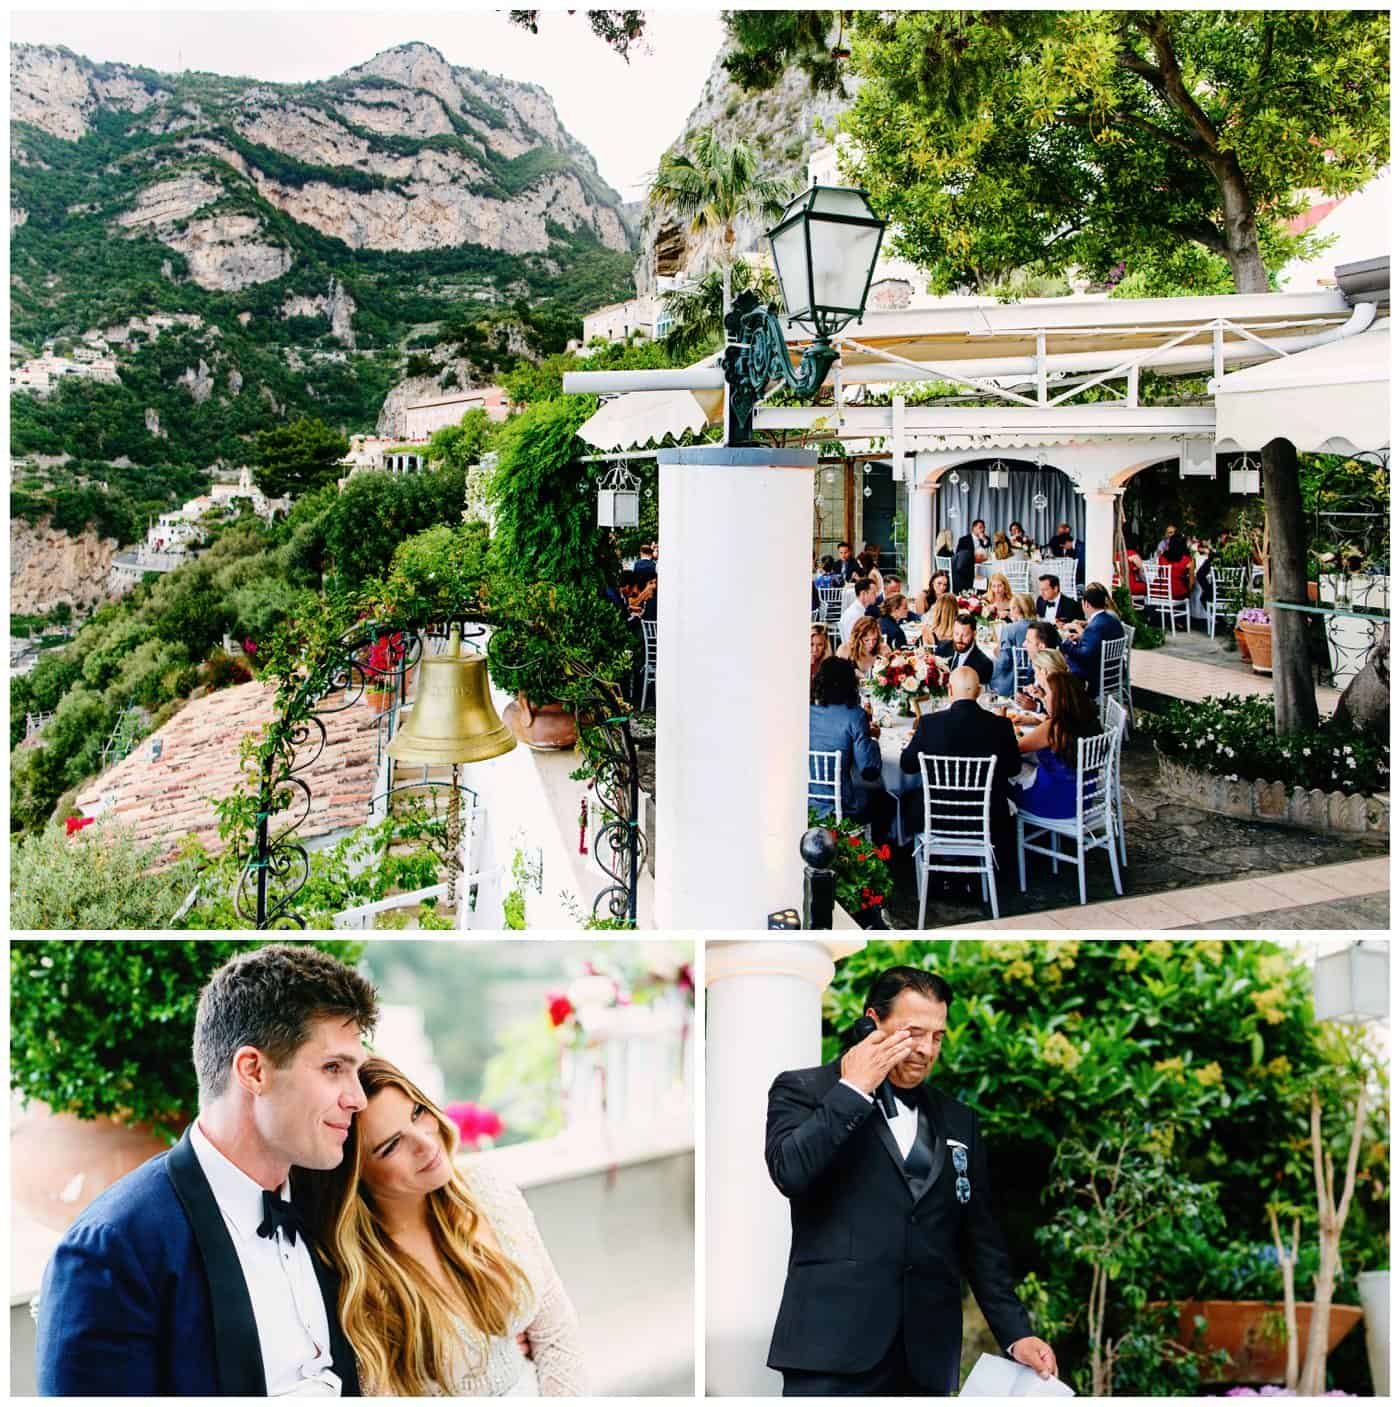 positano wedding venues